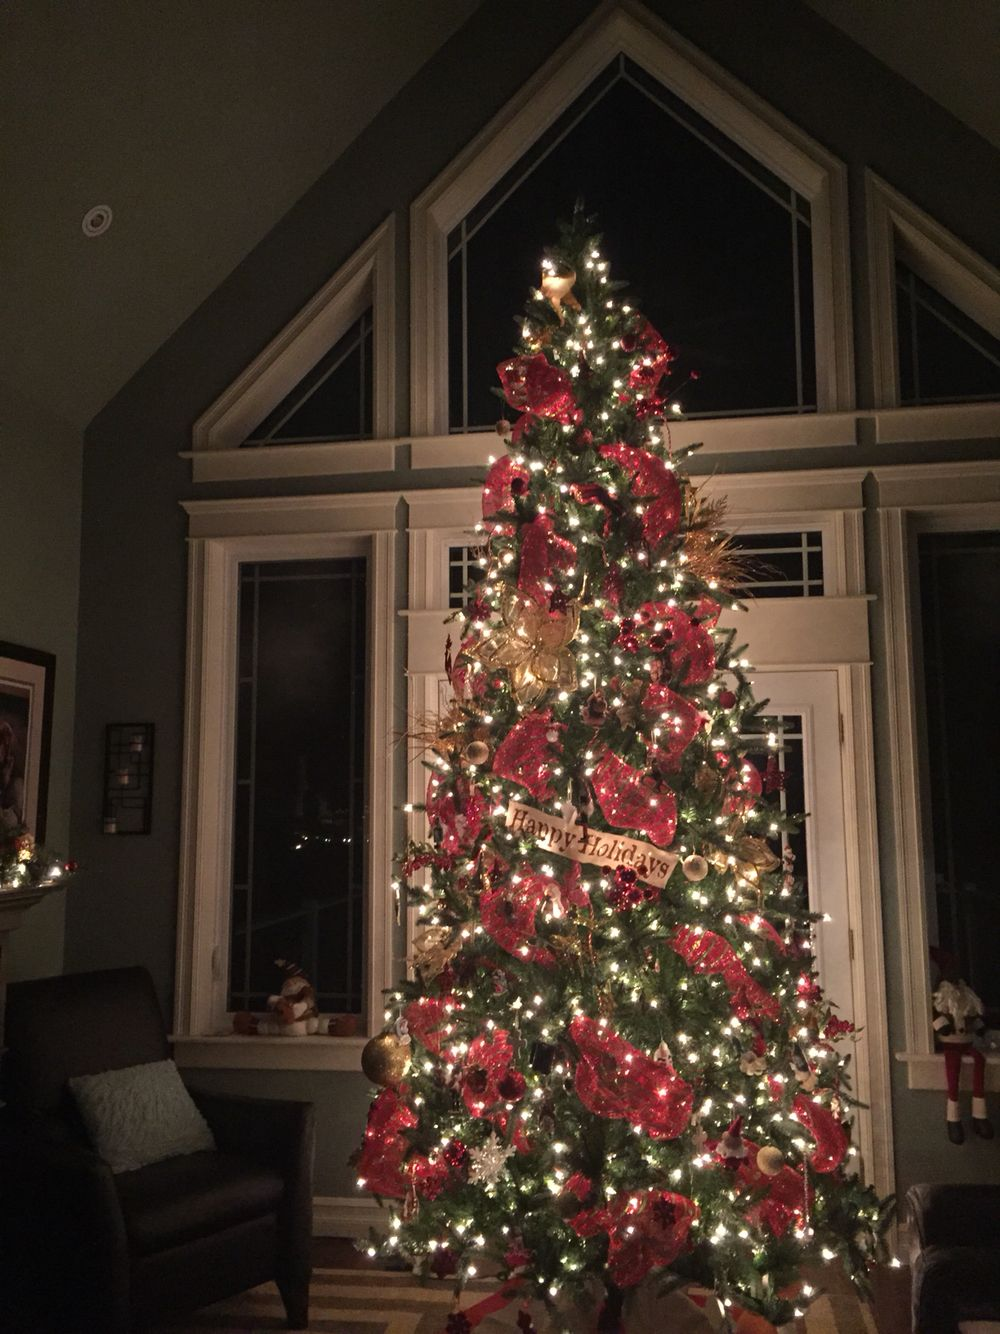 12 Foot Christmas Tree 12 Foot Christmas Tree Rustic Christmas Tree 12 Ft Christmas Tree